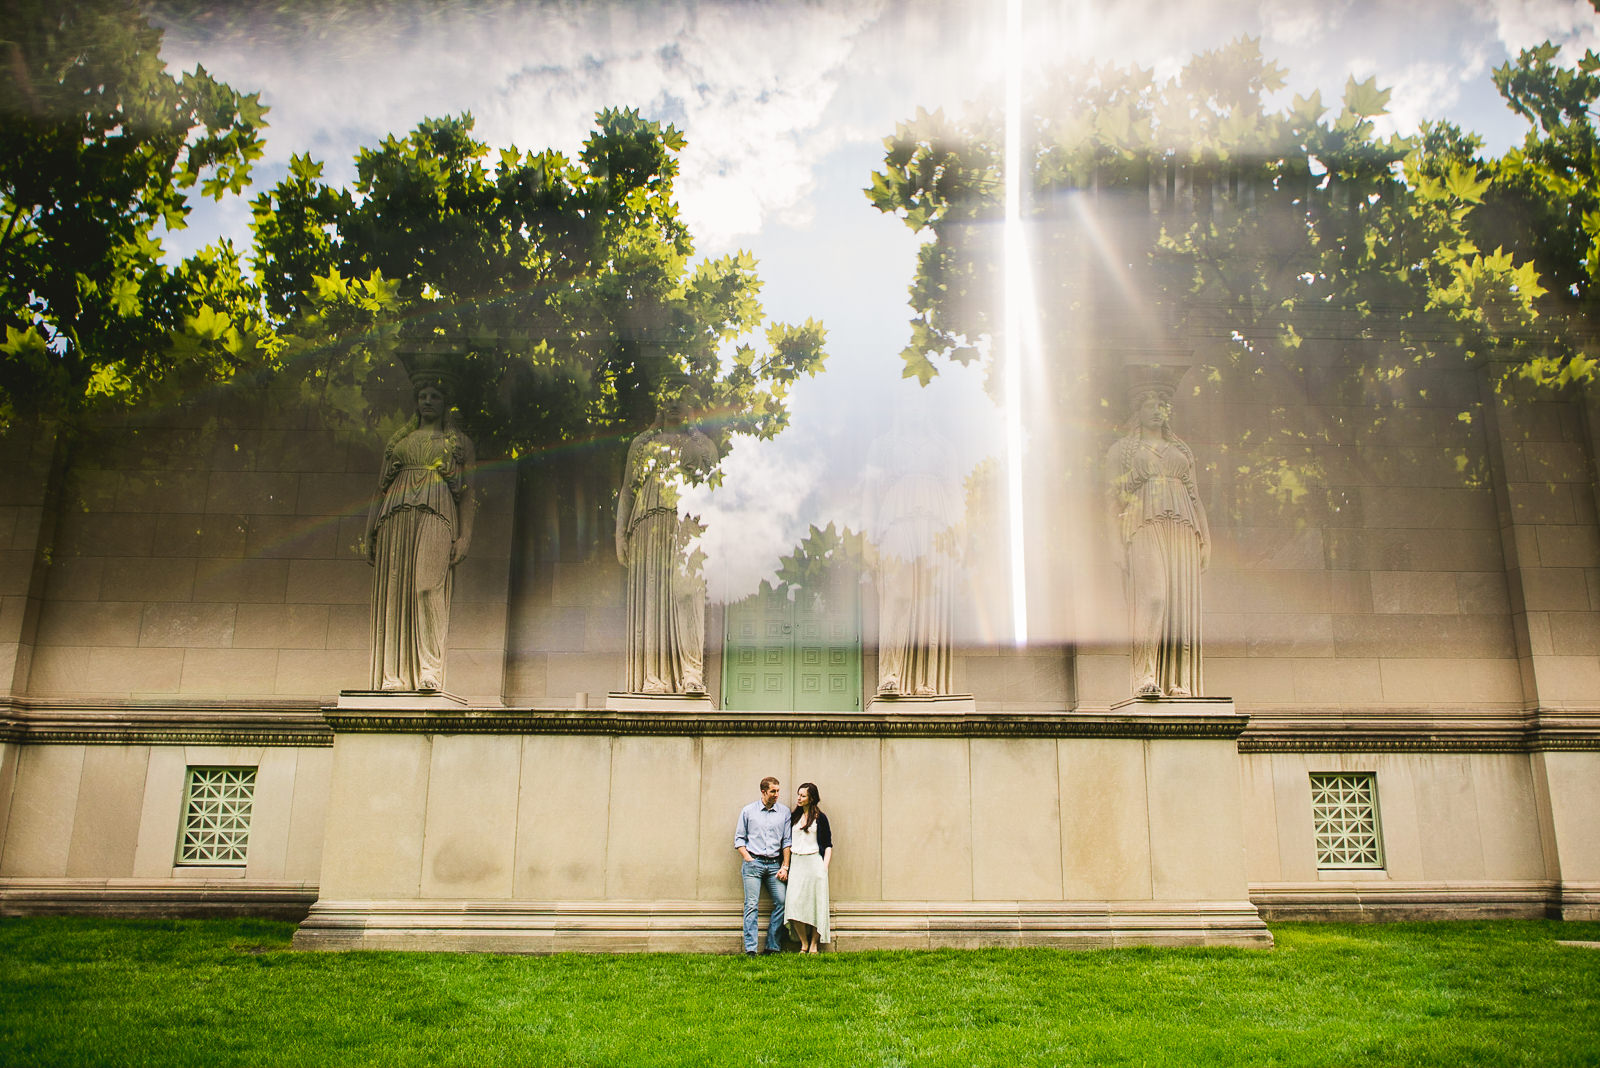 20 prisiming during engagement session - Hyde Park Chicago Engagement Photos // Annemarie + Zach